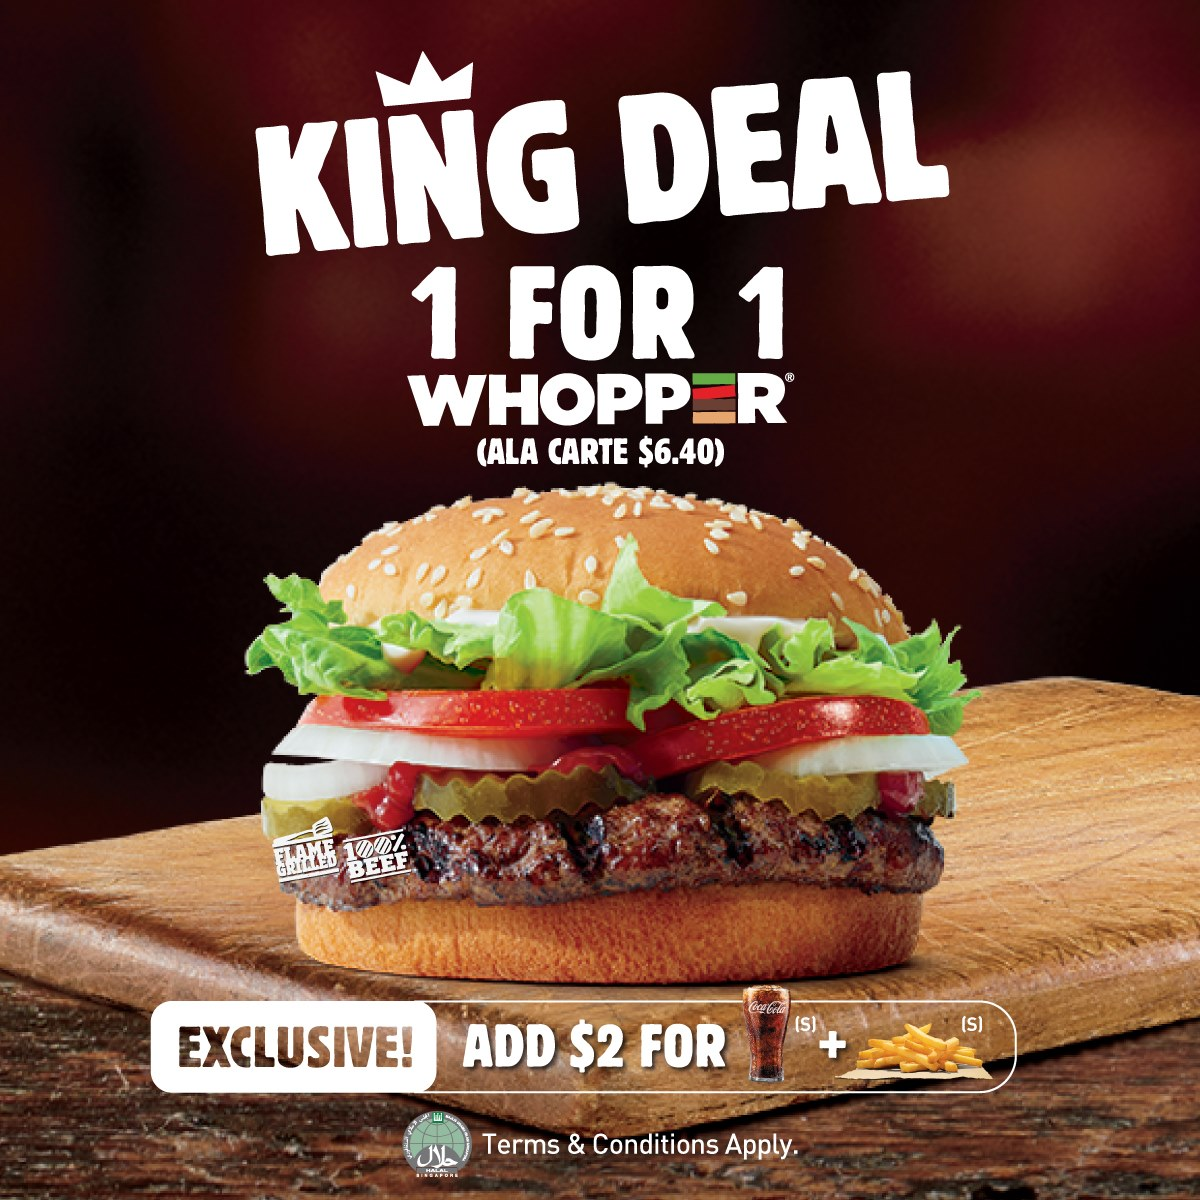 Burger King Singapore Whopper Buy 1 Get 1 FREE Promotion While Stocks Last | Why Not Deals & Promotions